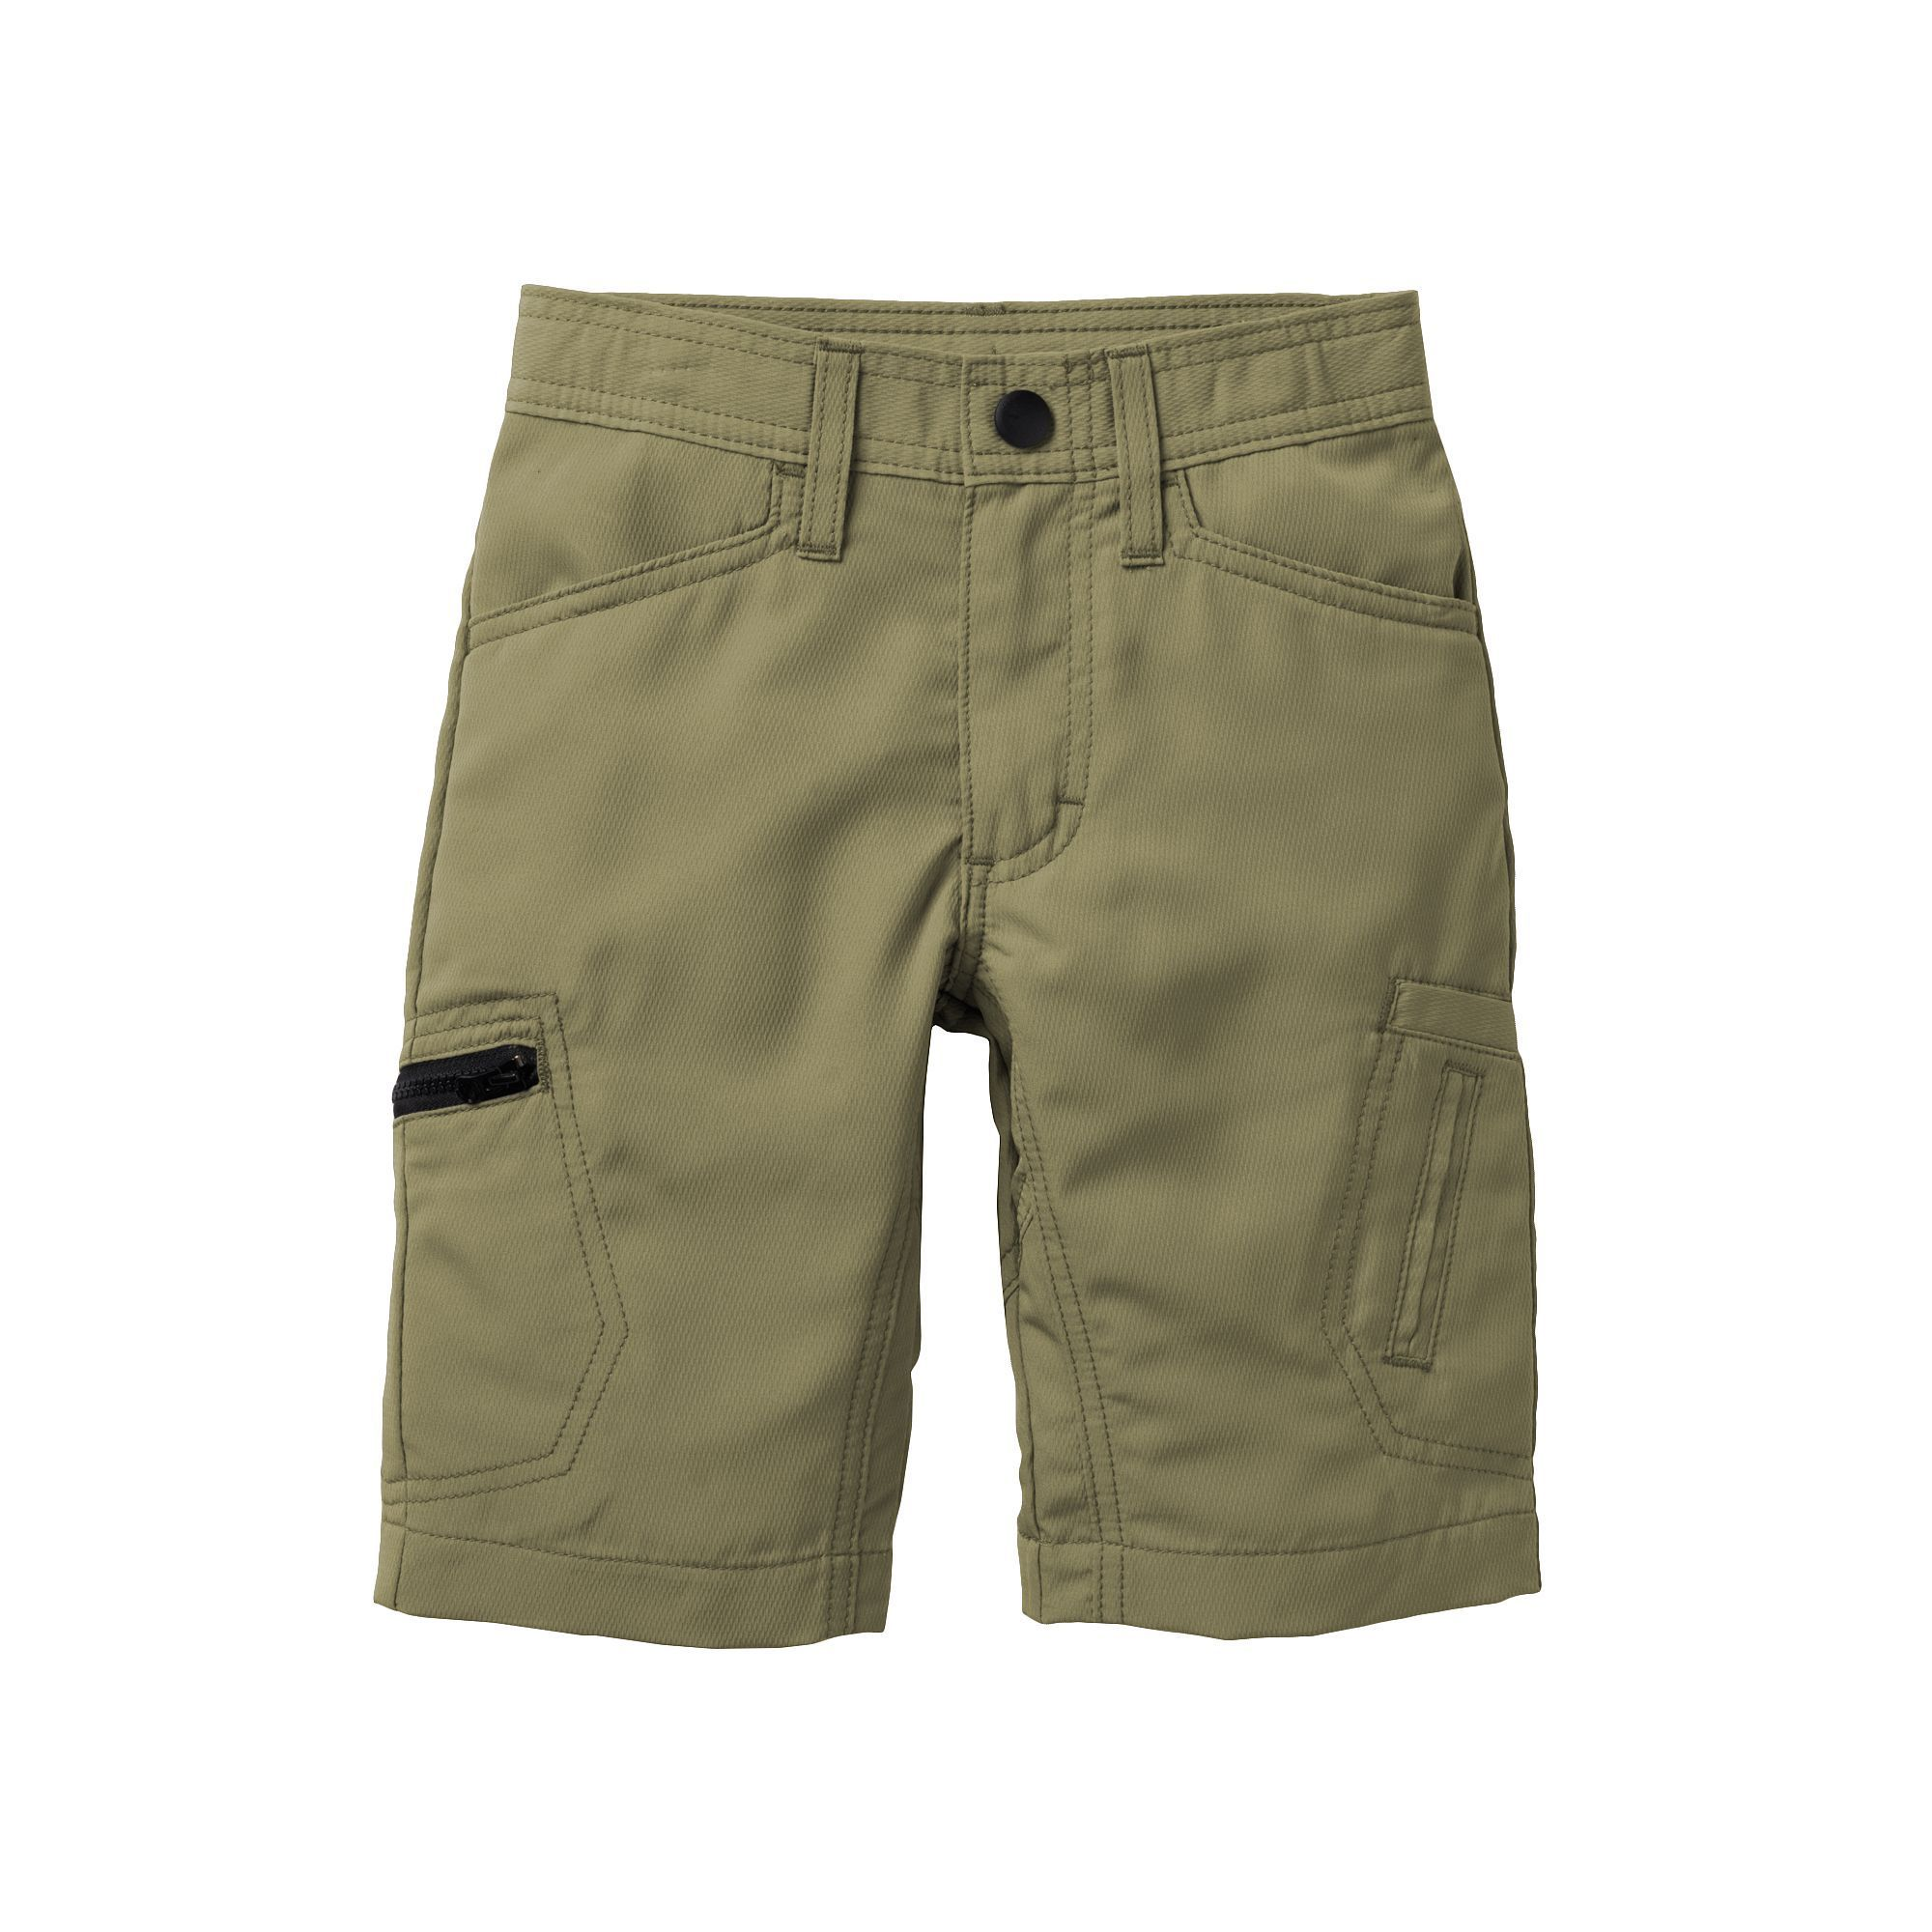 61896a476c Boys 4-7x Lee Dungaree Grafton Cargo Shorts, Boy's, Size: medium (7), Brown  Oth. Find this Pin and more ...